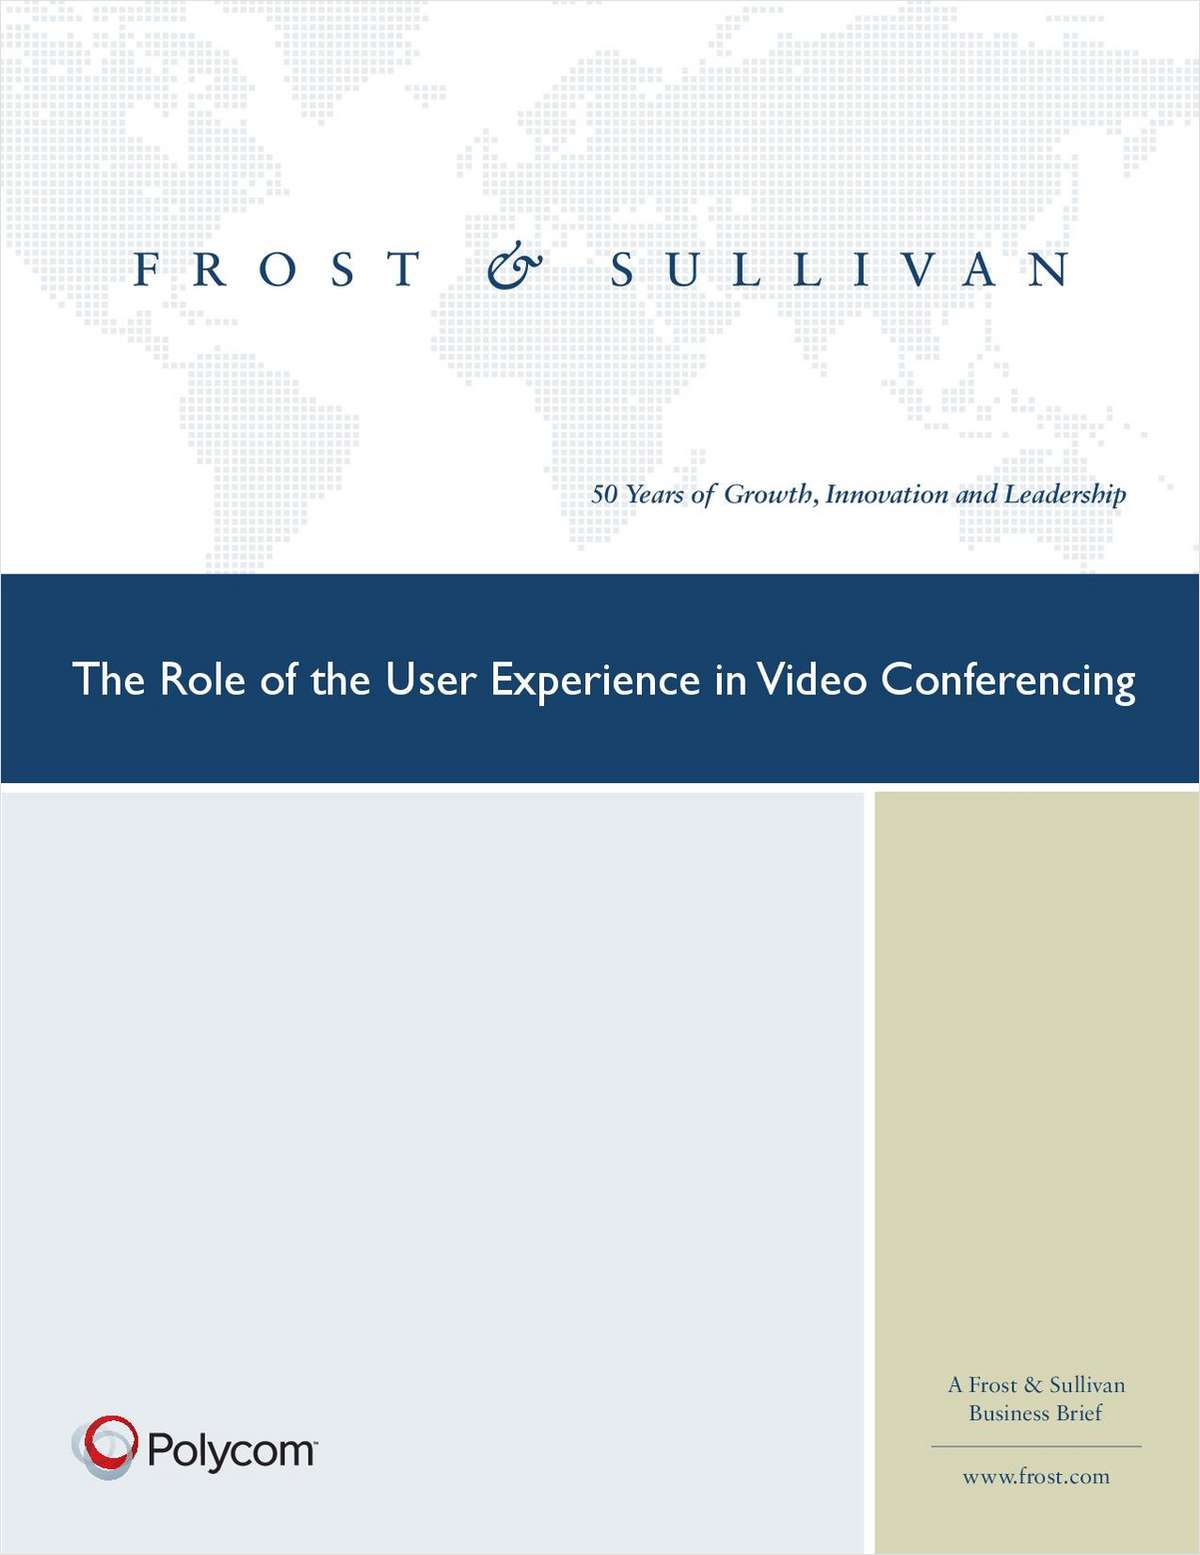 Expand the User Experience in Video Conferencing